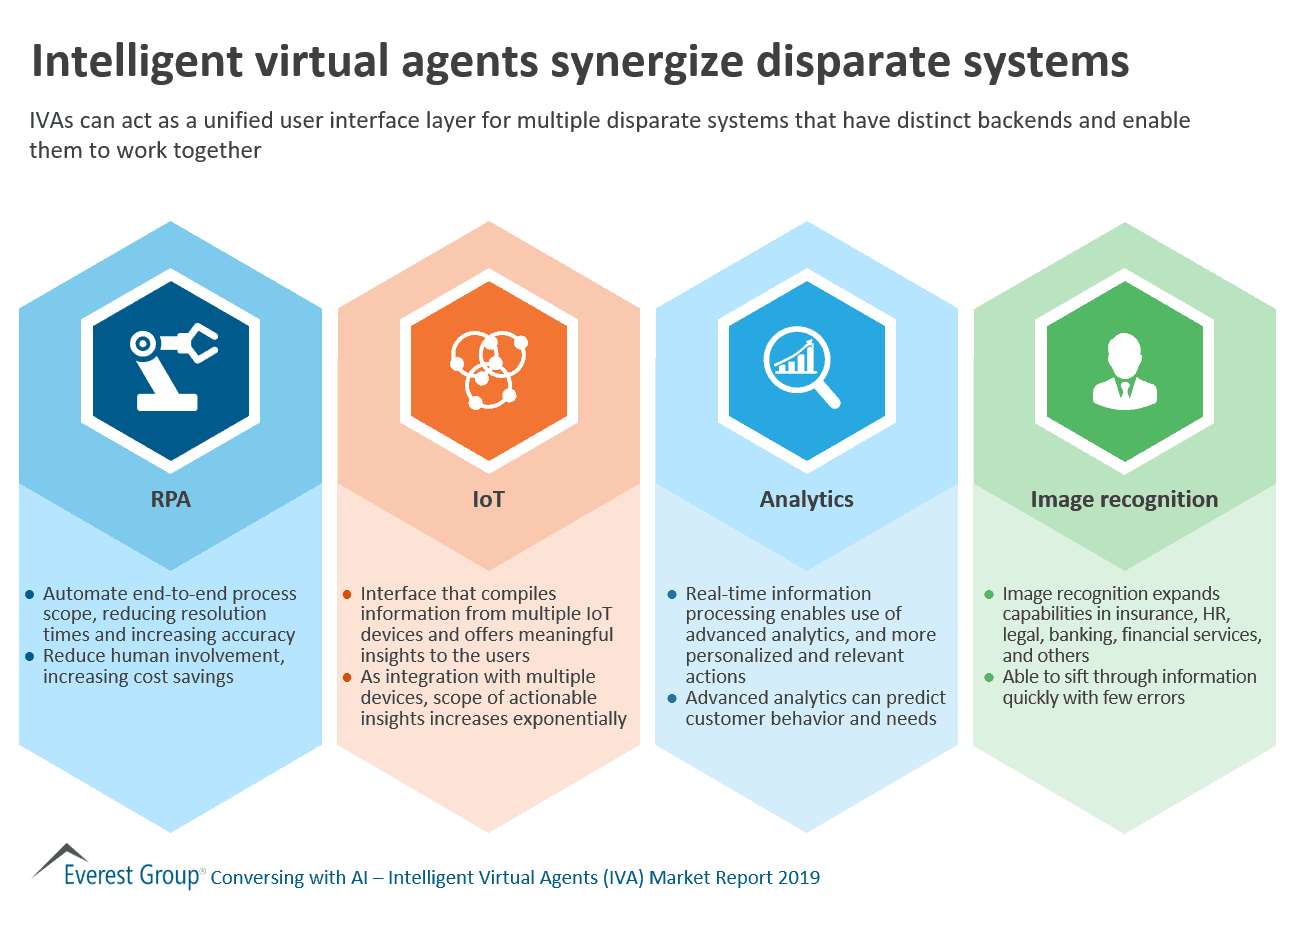 Intelligent virtual agents synergize systems